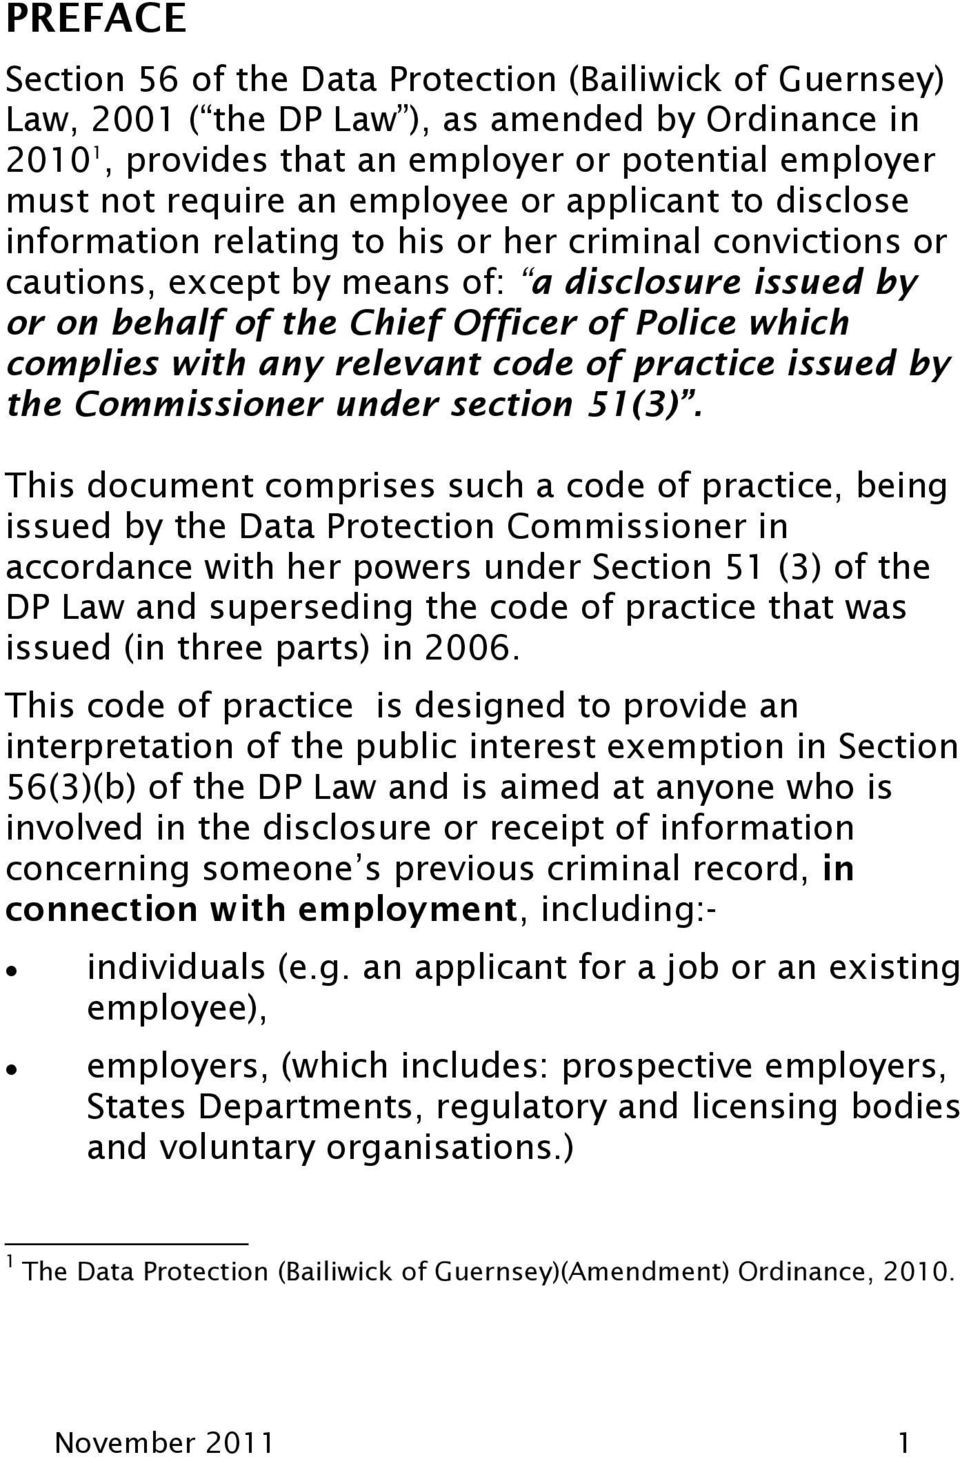 complies with any relevant code of practice issued by the Commissioner under section 51(3).